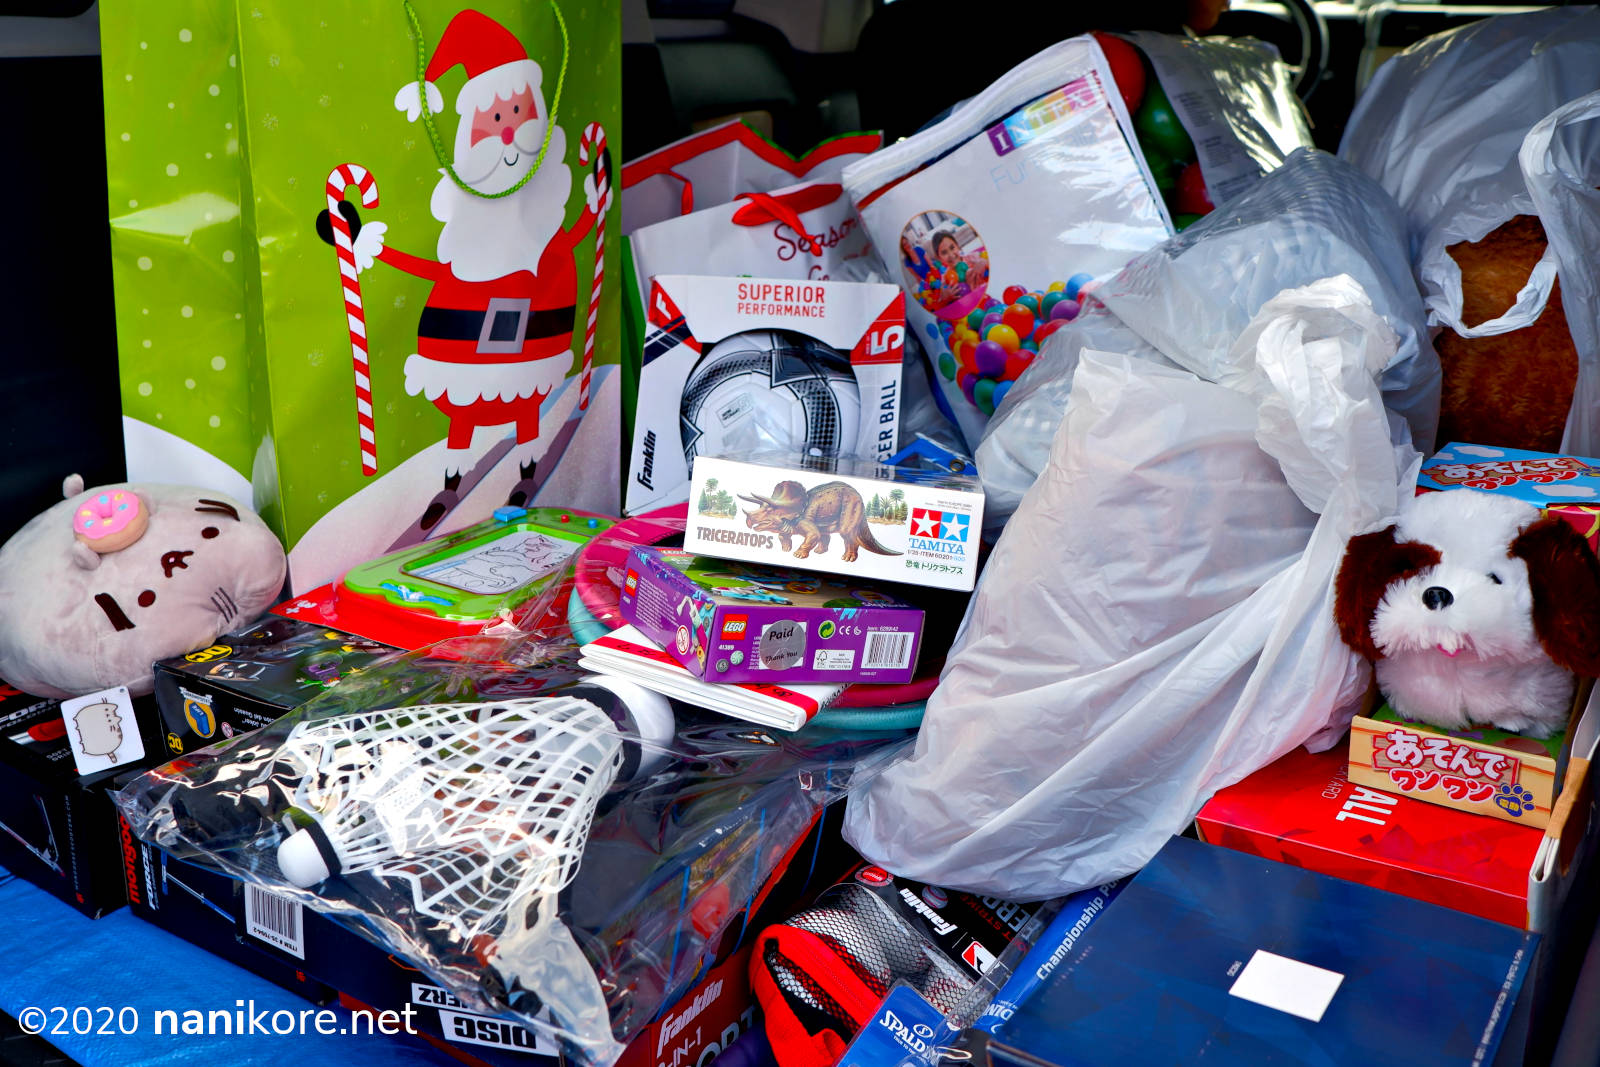 ...and more cars full of gifts!